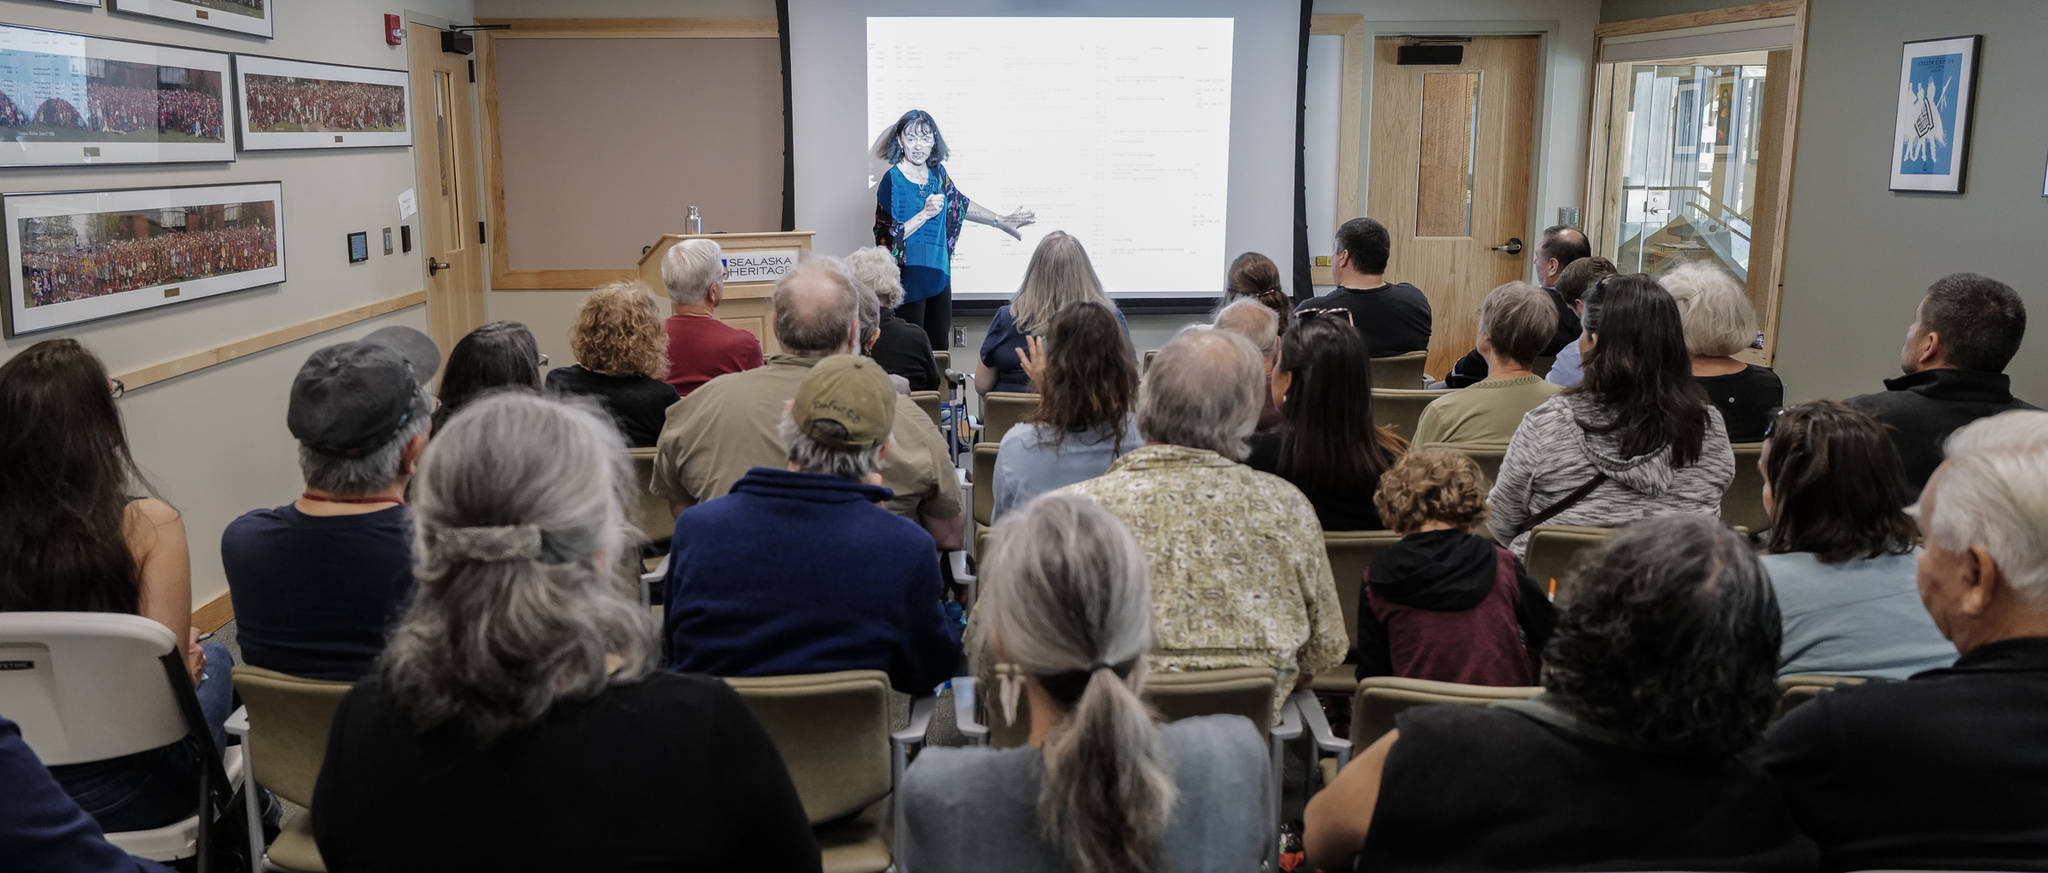 Dr. Madonna Moss, professor of anthropological archaeology at the University of Oregon, speaks on Tlingit relationships with sea otters and whether Tlingit people consumed sea otters as food in the past during a lecture at the Walter Soboleff Center on Friday, Aug. 2, 2019. (Michael Penn | Juneau Empire)